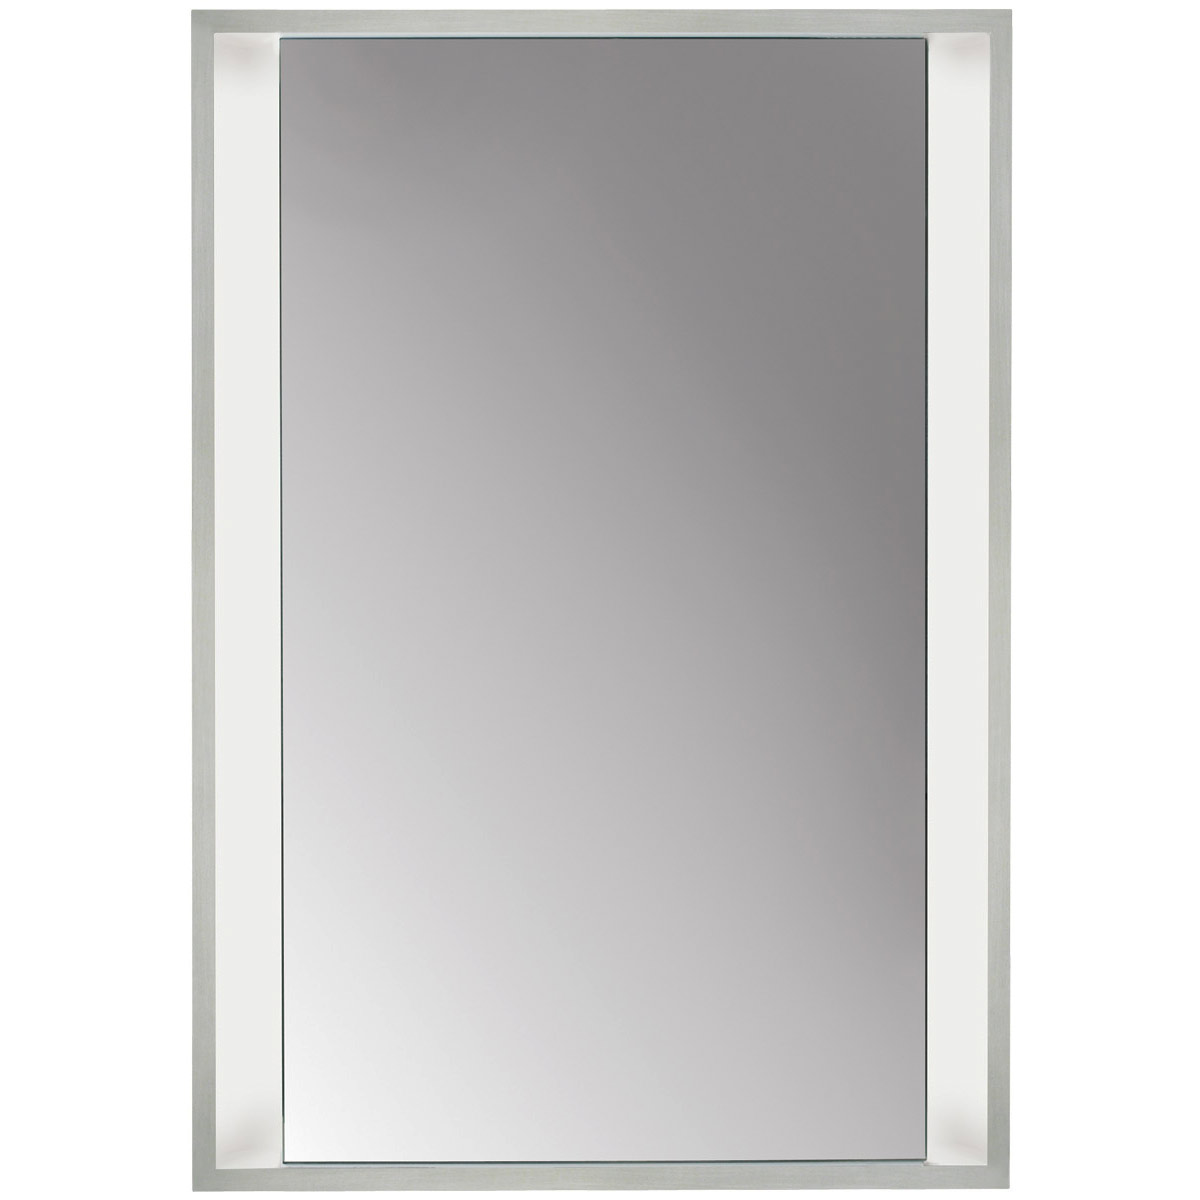 Siber Recessed Mirror by Tech Lighting | 700BCSIBRS